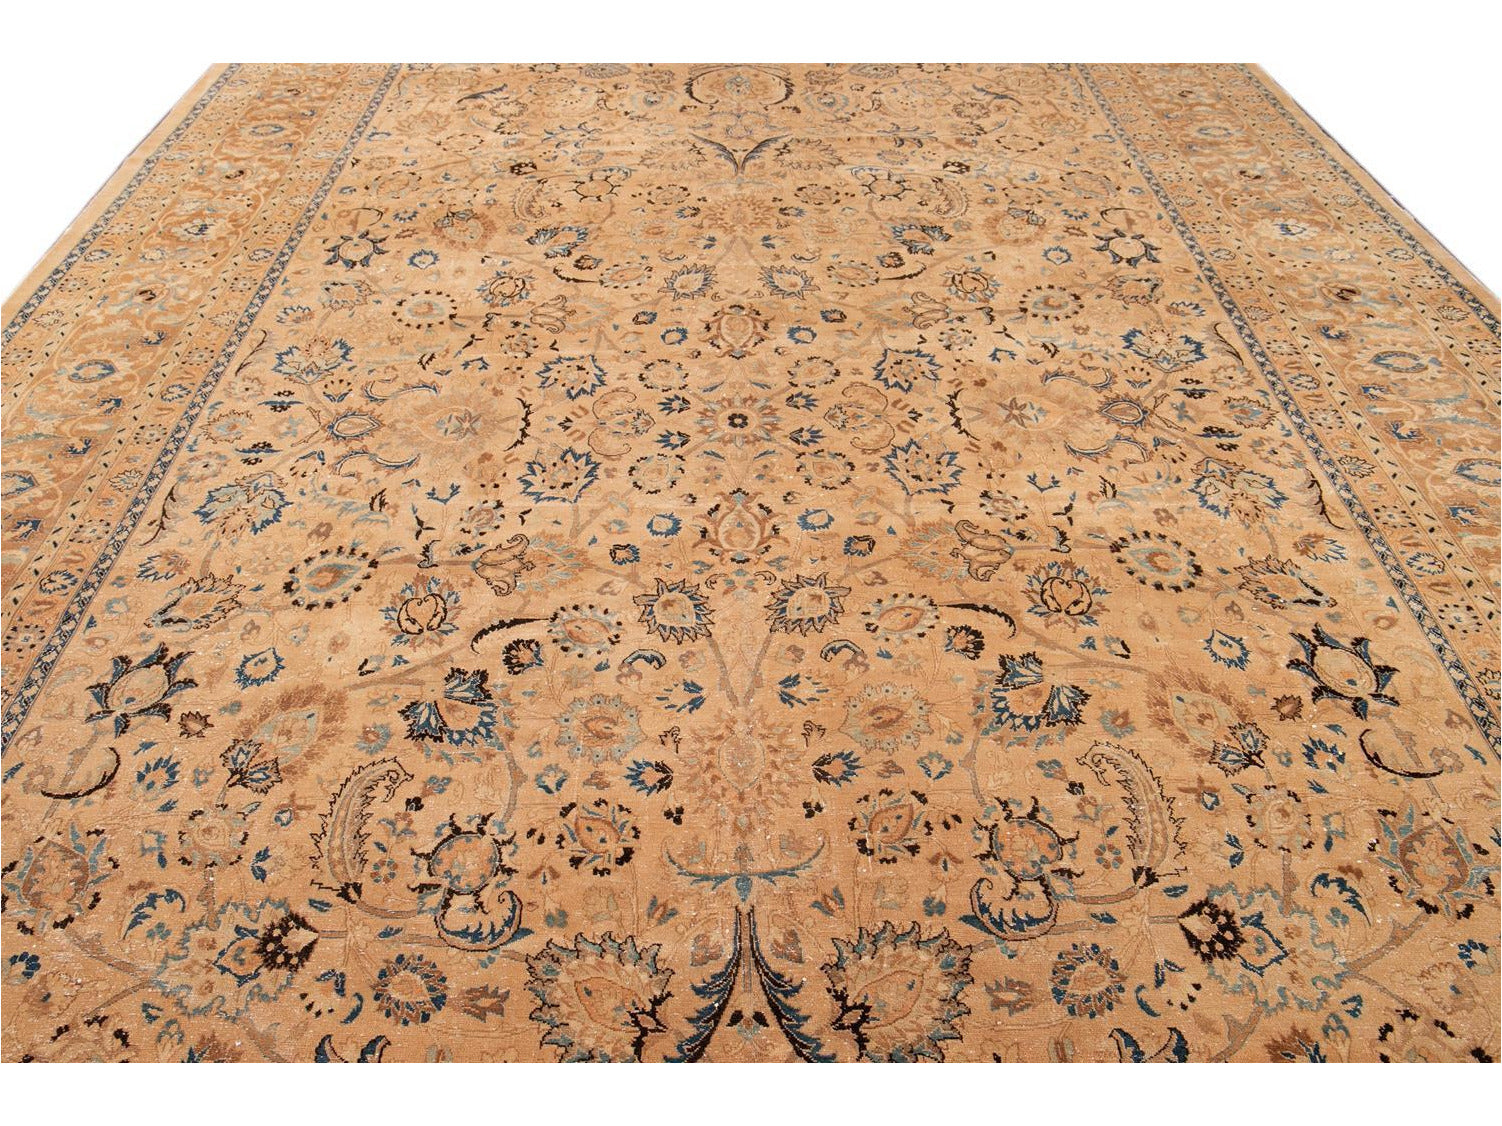 Early 20th Century Antique Tabriz Wool Rug, 11' x 17'